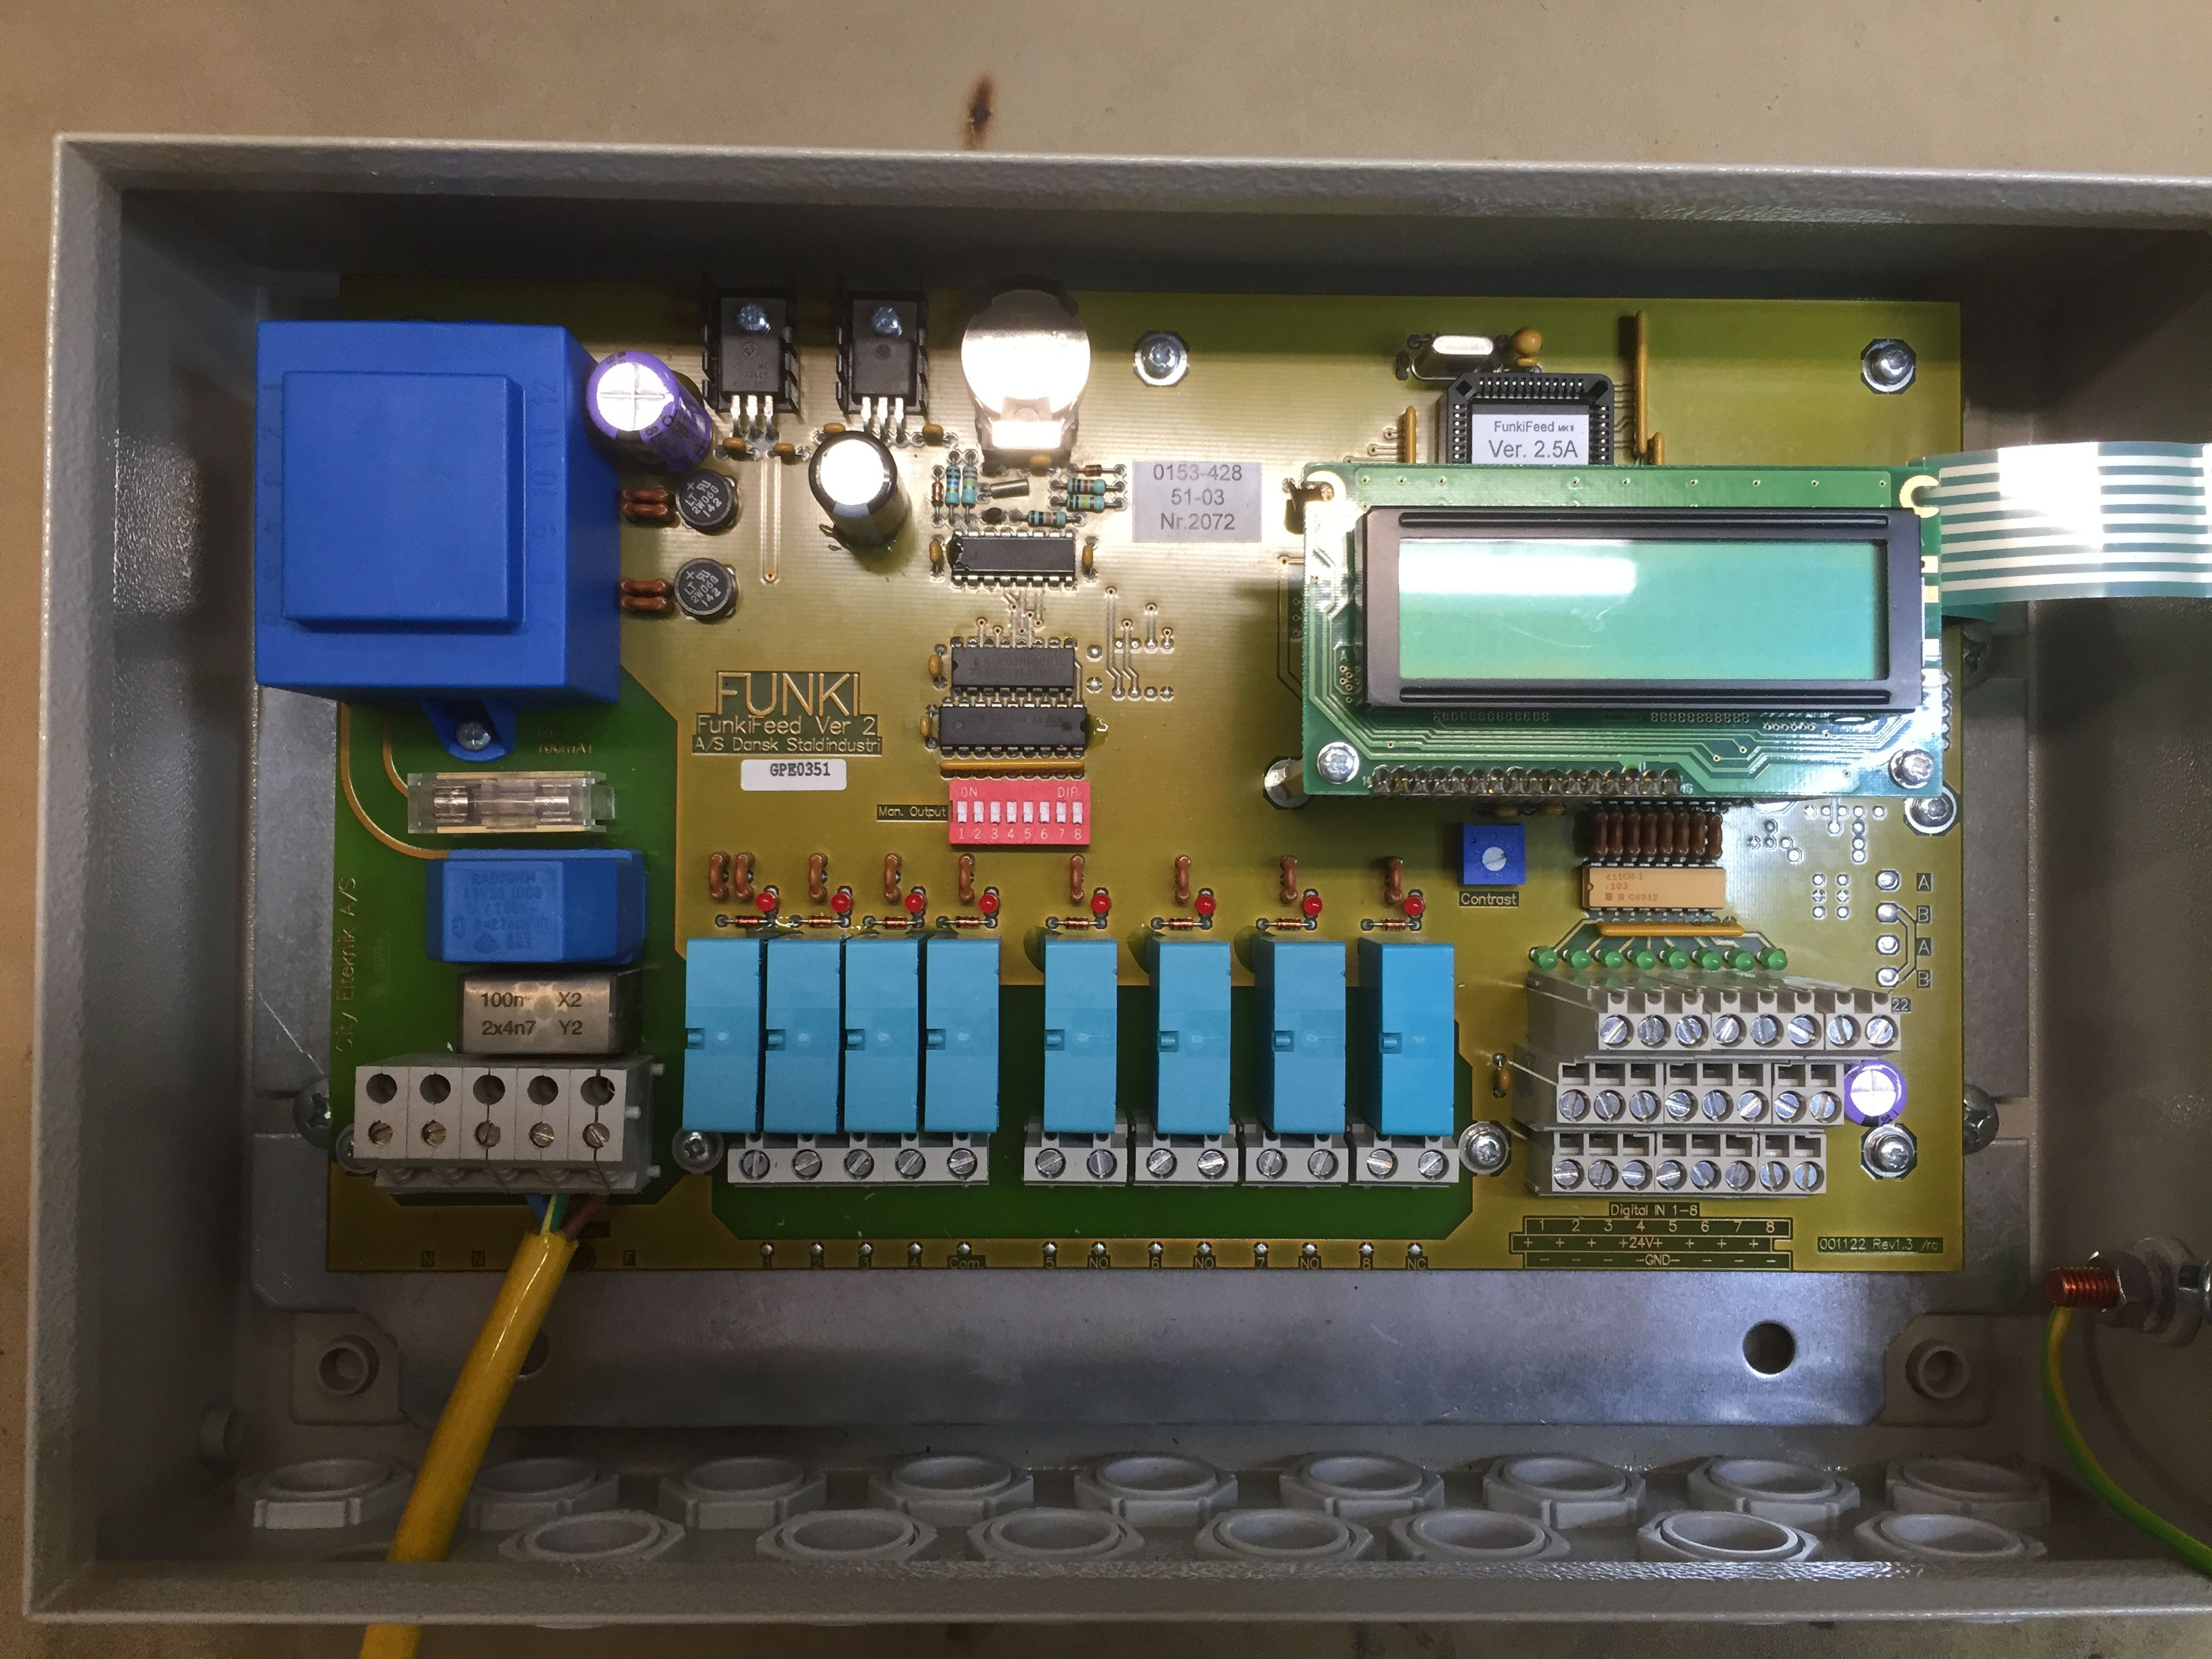 Control unit for feed system